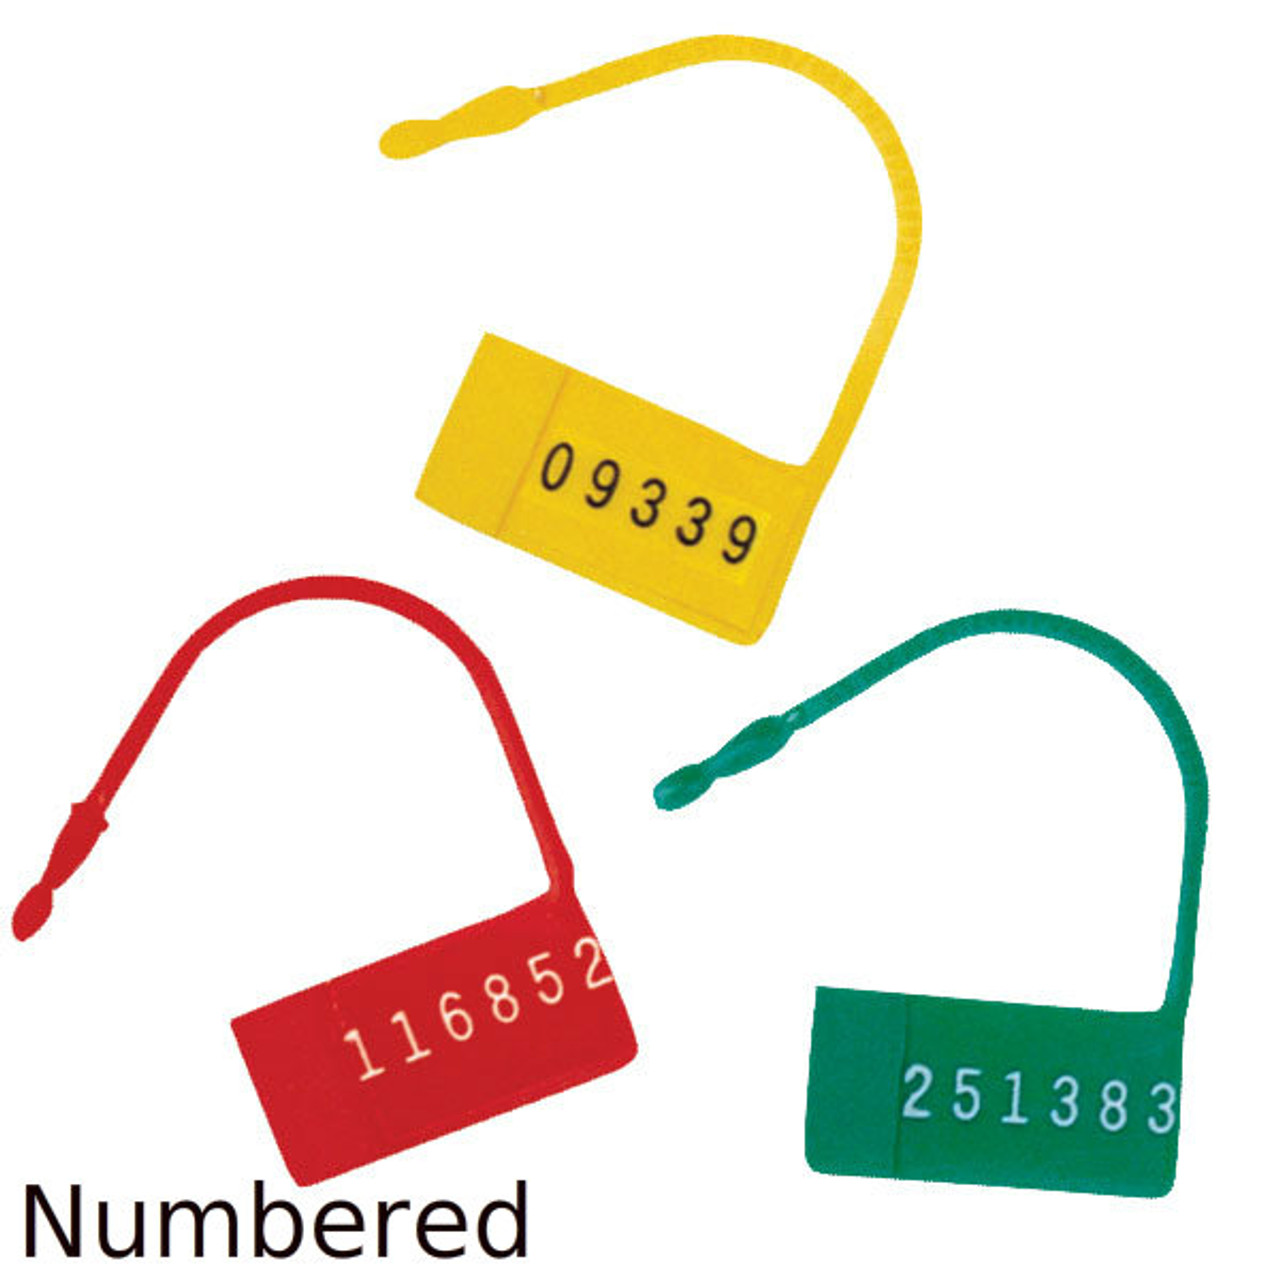 Security Control Locks (Seals) with Numbers - 100 per Pack